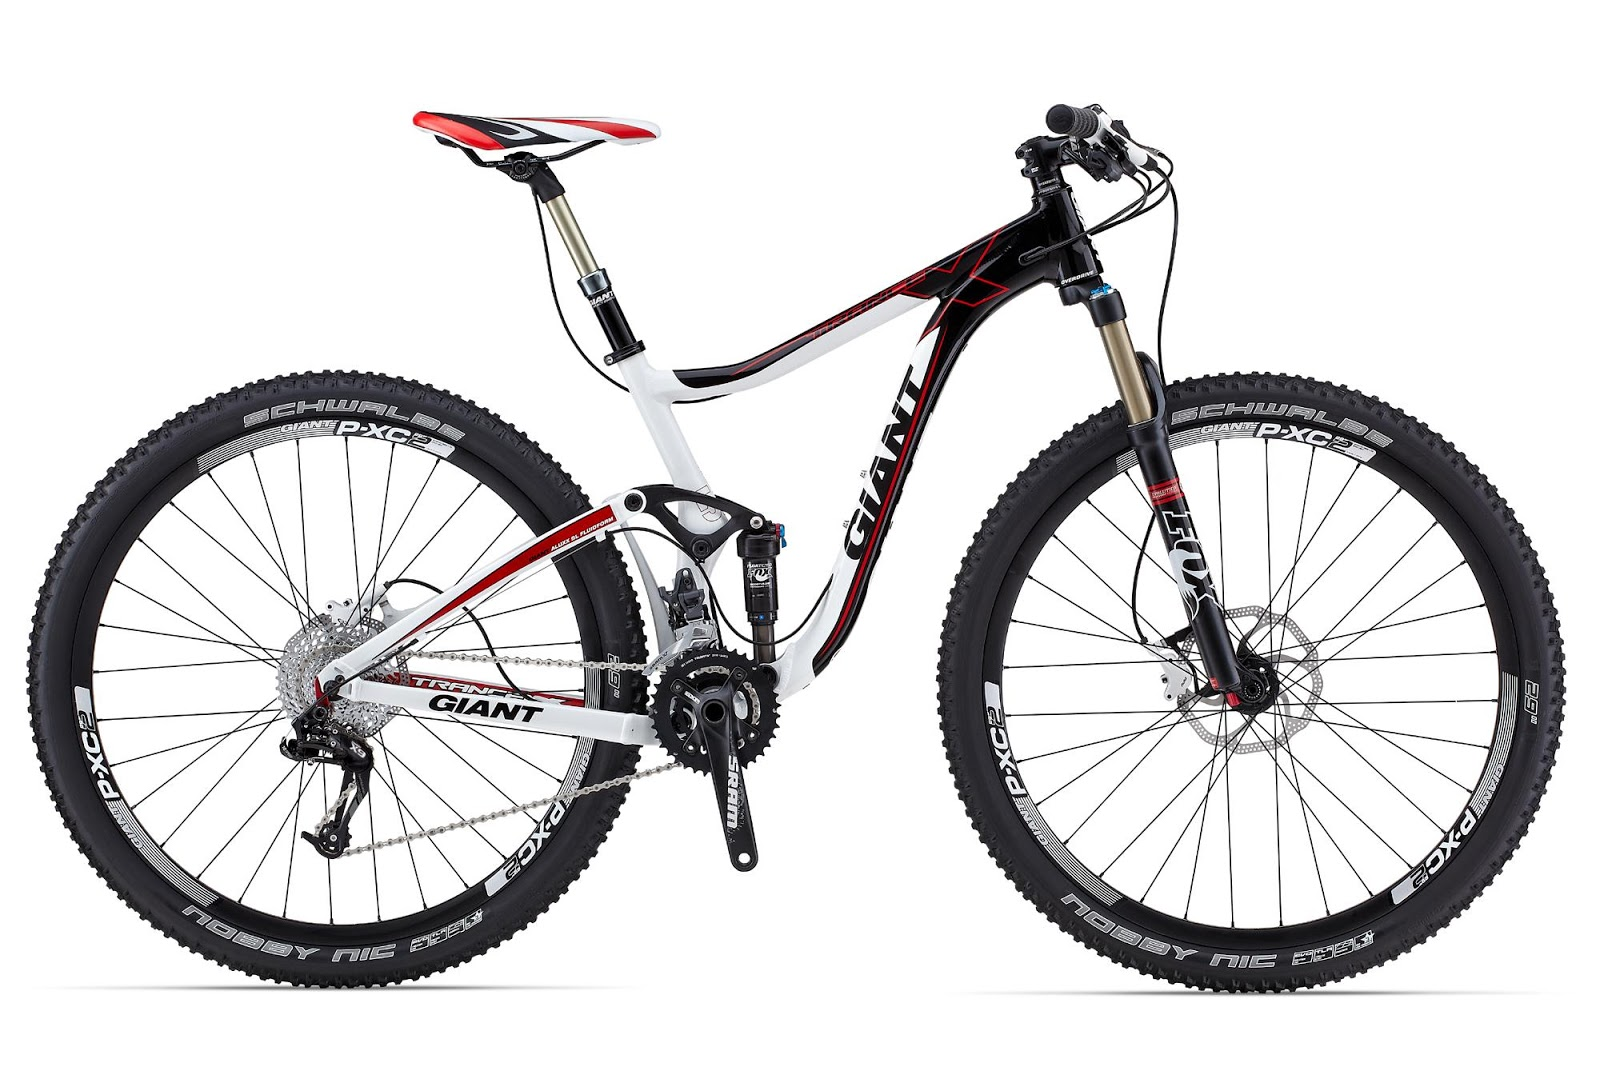 5bb208c3cc7 We finally received our long awaited 2013 Giant Trance X 29 demo bikes! We  originally had been waiting for the